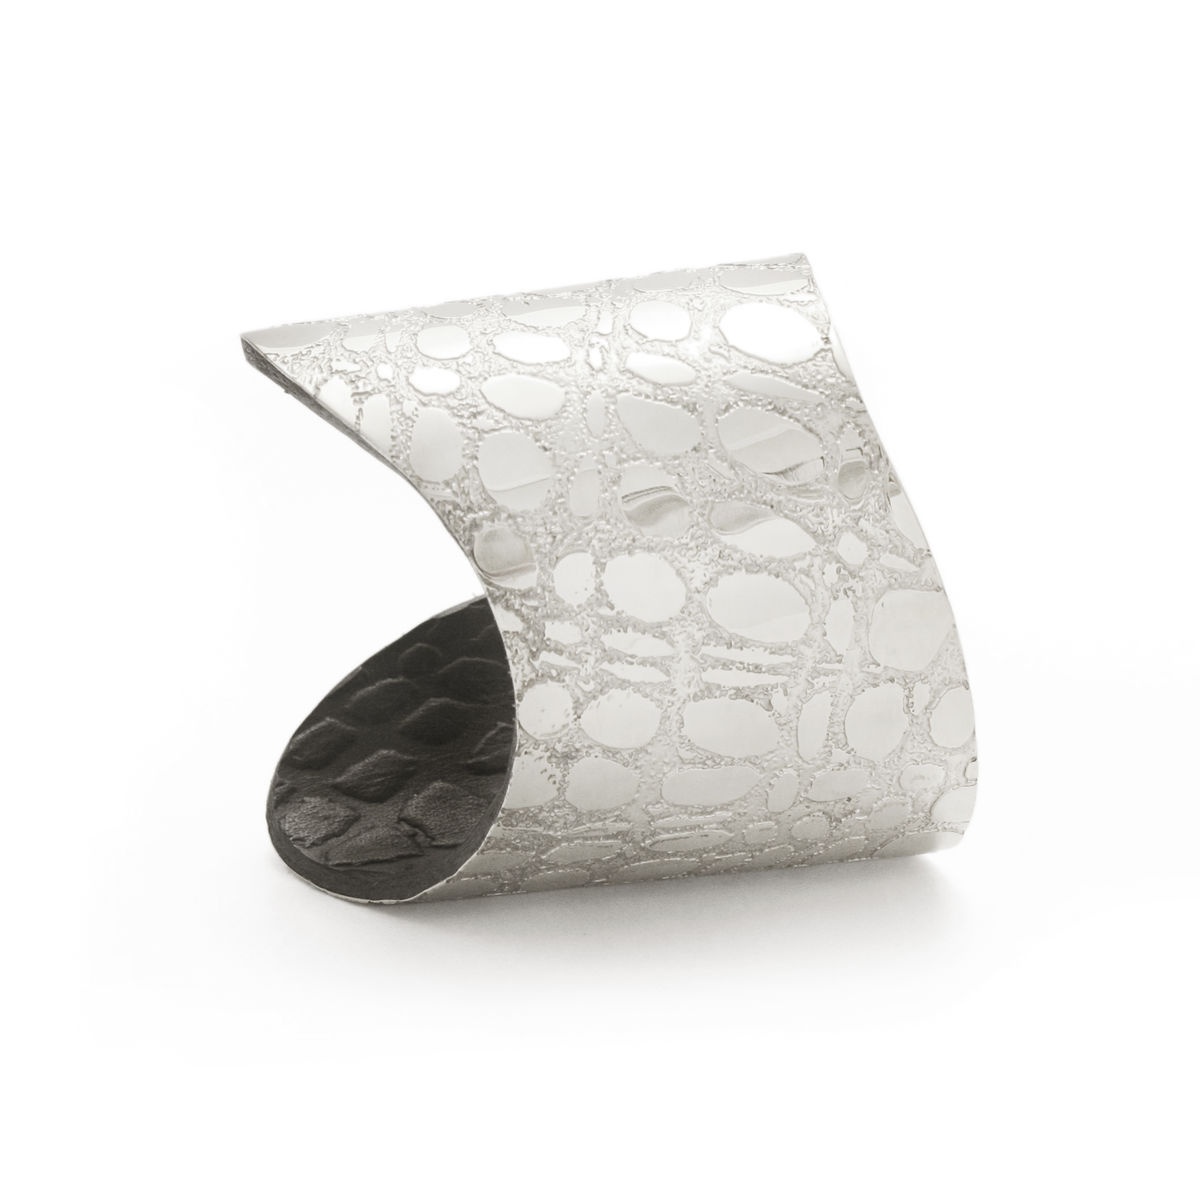 Skin Textured Silver & Black Etched Cuff (long) - Sara Gunn - product images  of